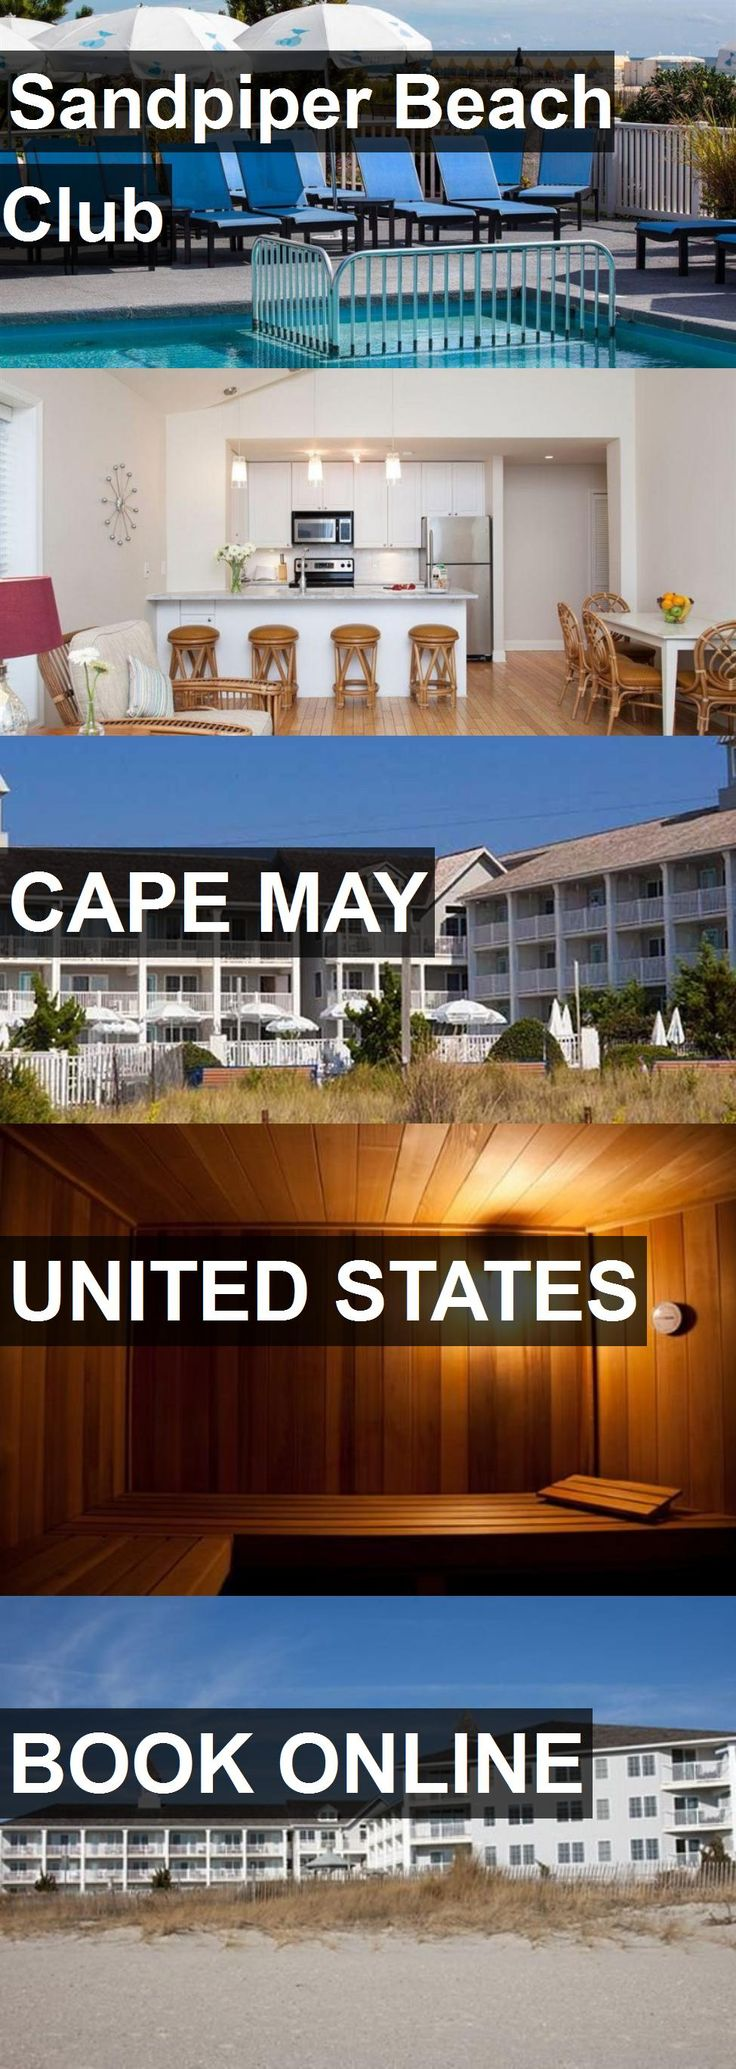 Hotel Sandpiper Beach Club in Cape May, United States. For more information, photos, reviews and best prices please follow the link. #UnitedStates #CapeMay #hotel #travel #vacation